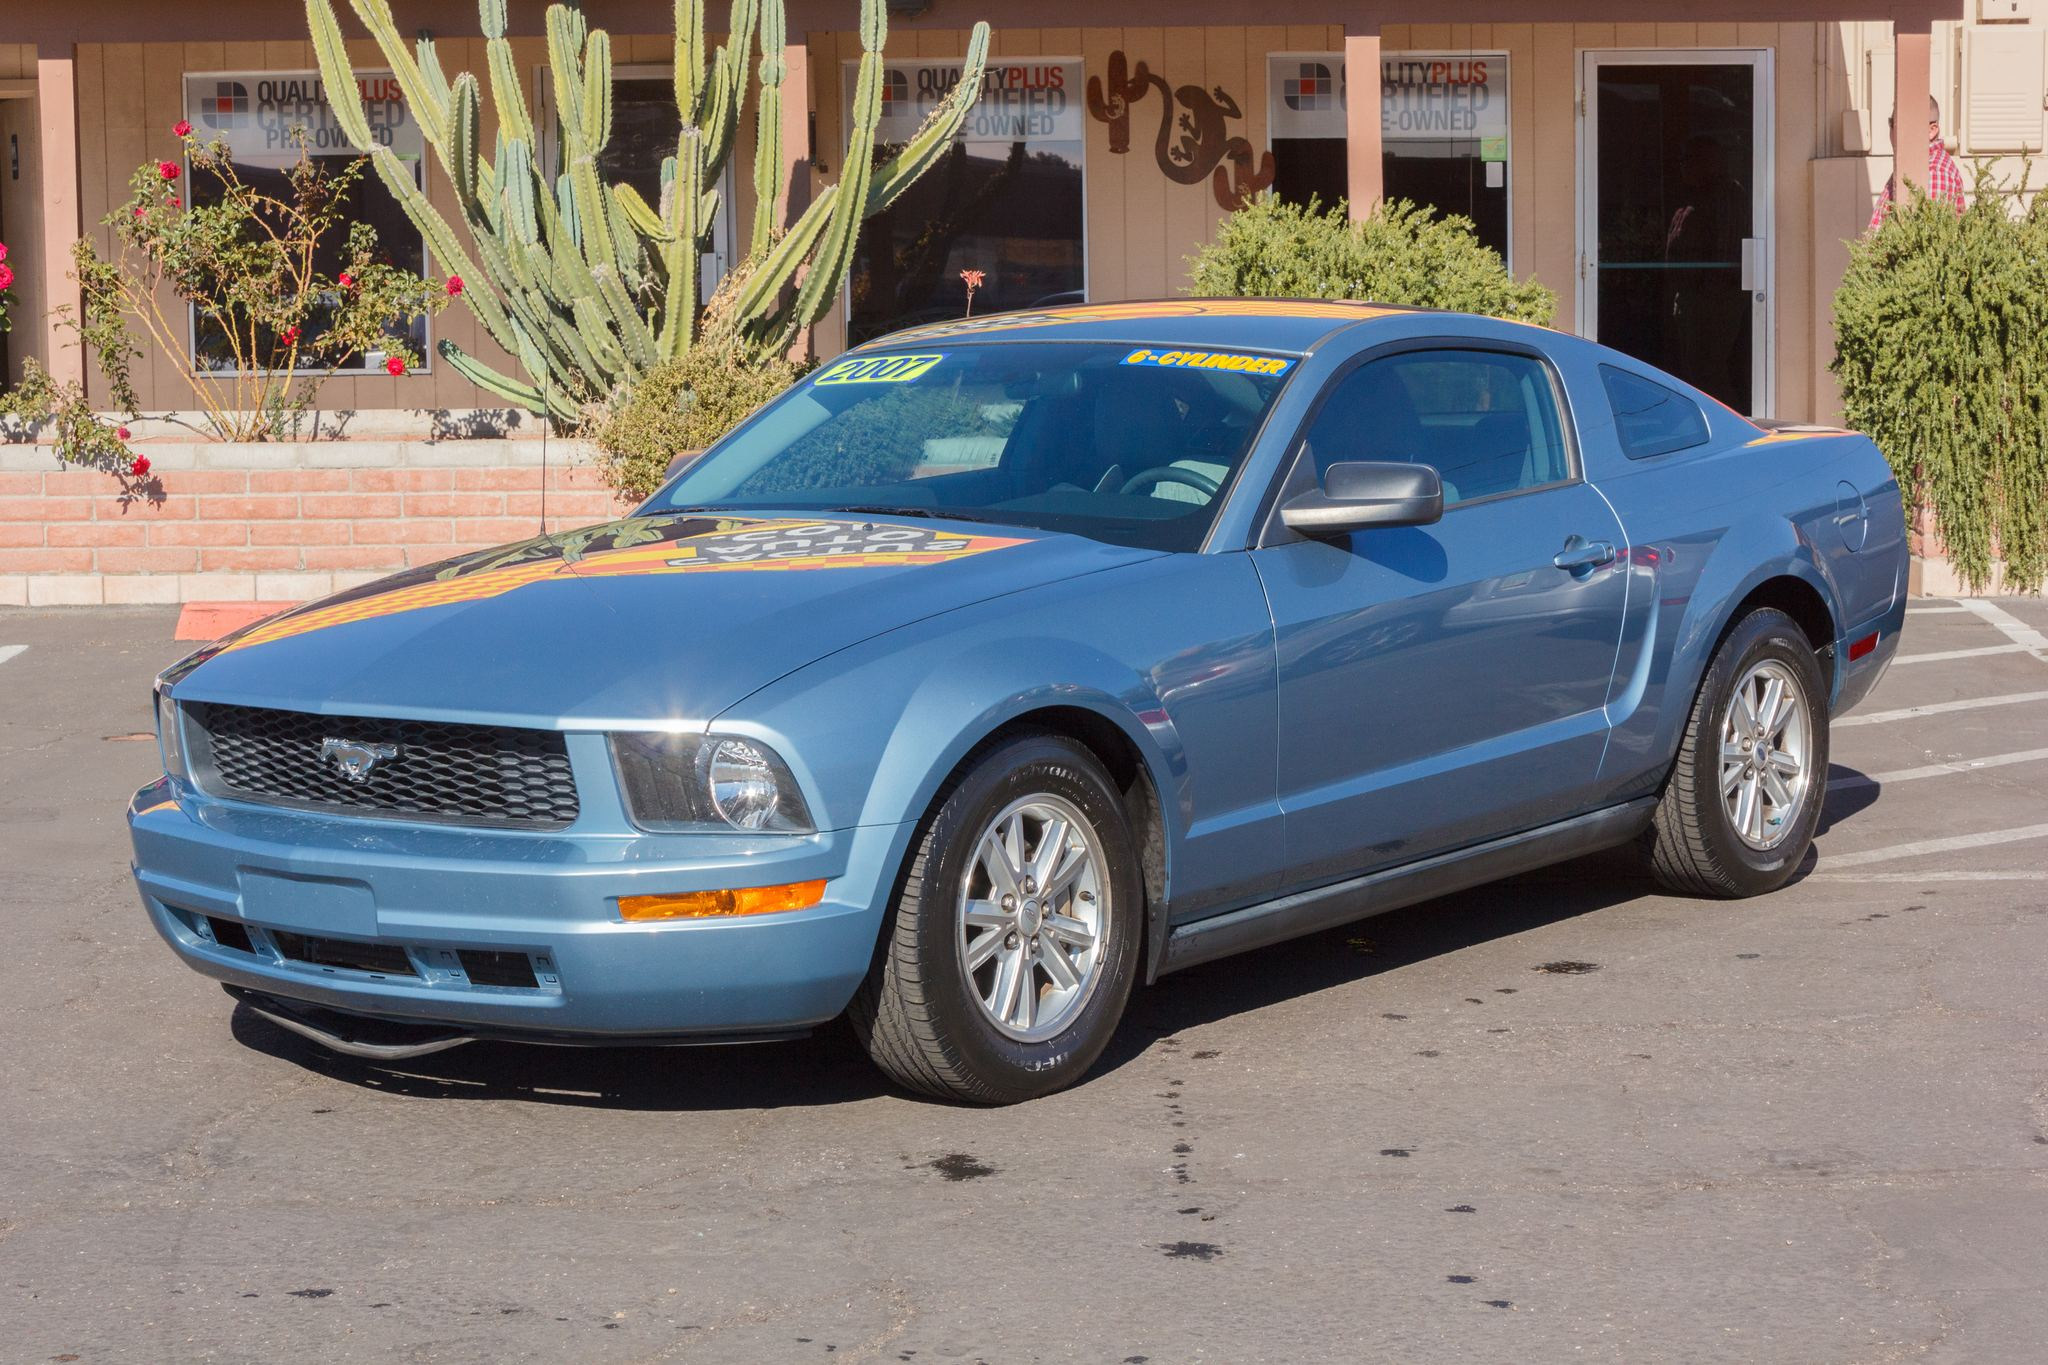 Photo of 2007 Ford Mustang 2d Coupe Deluxe Windveil Blue Clearcoat Metallic